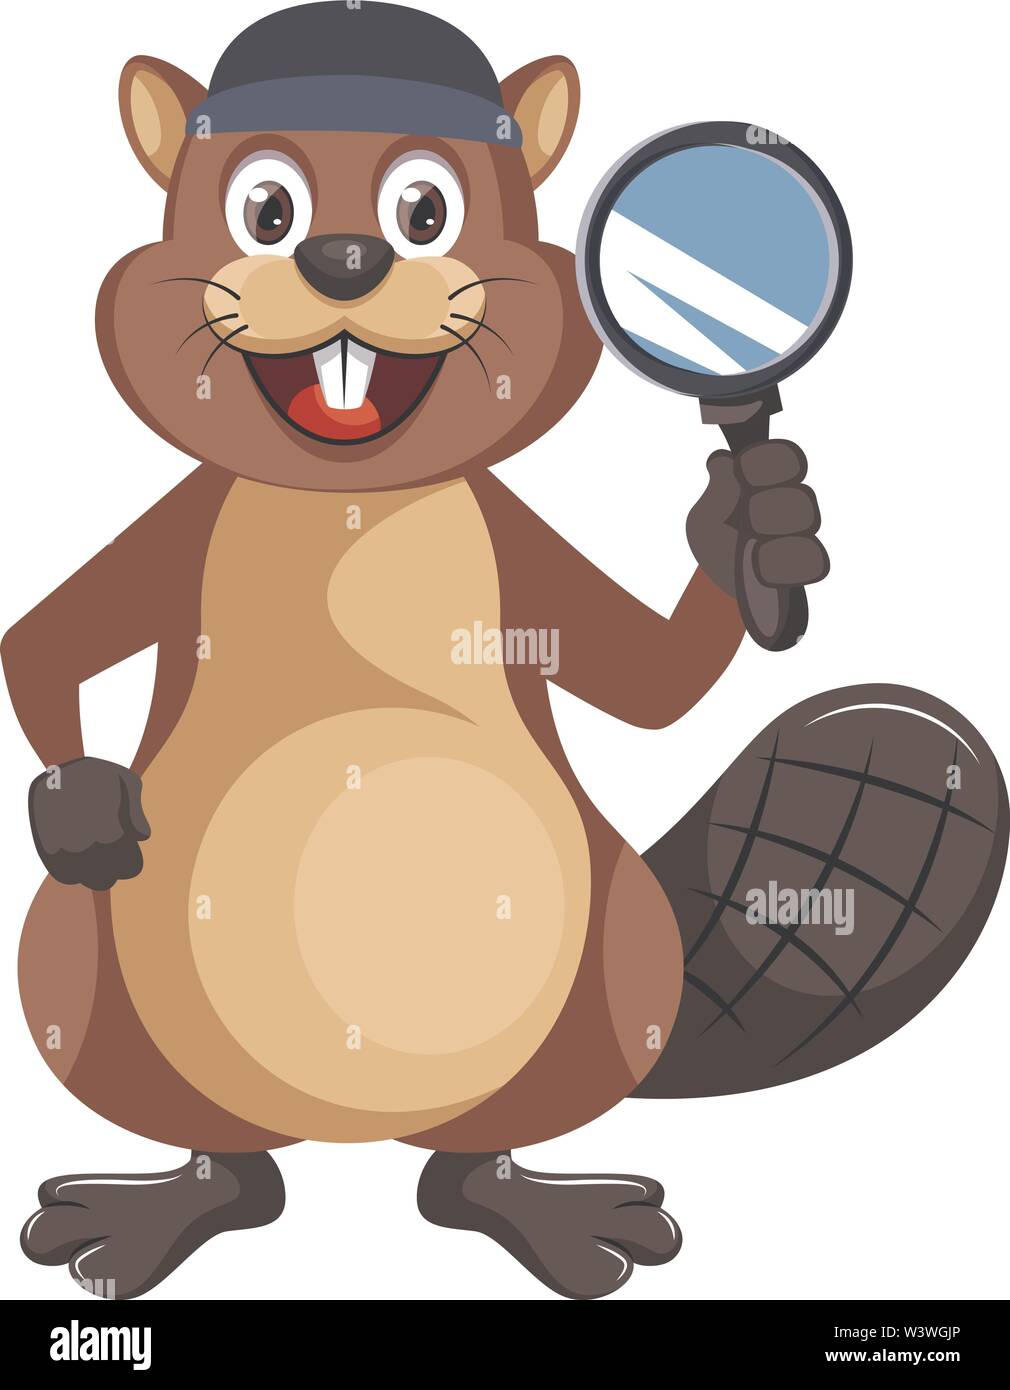 Beaver with magnifying glass, illustration, vector on white background. - Stock Image